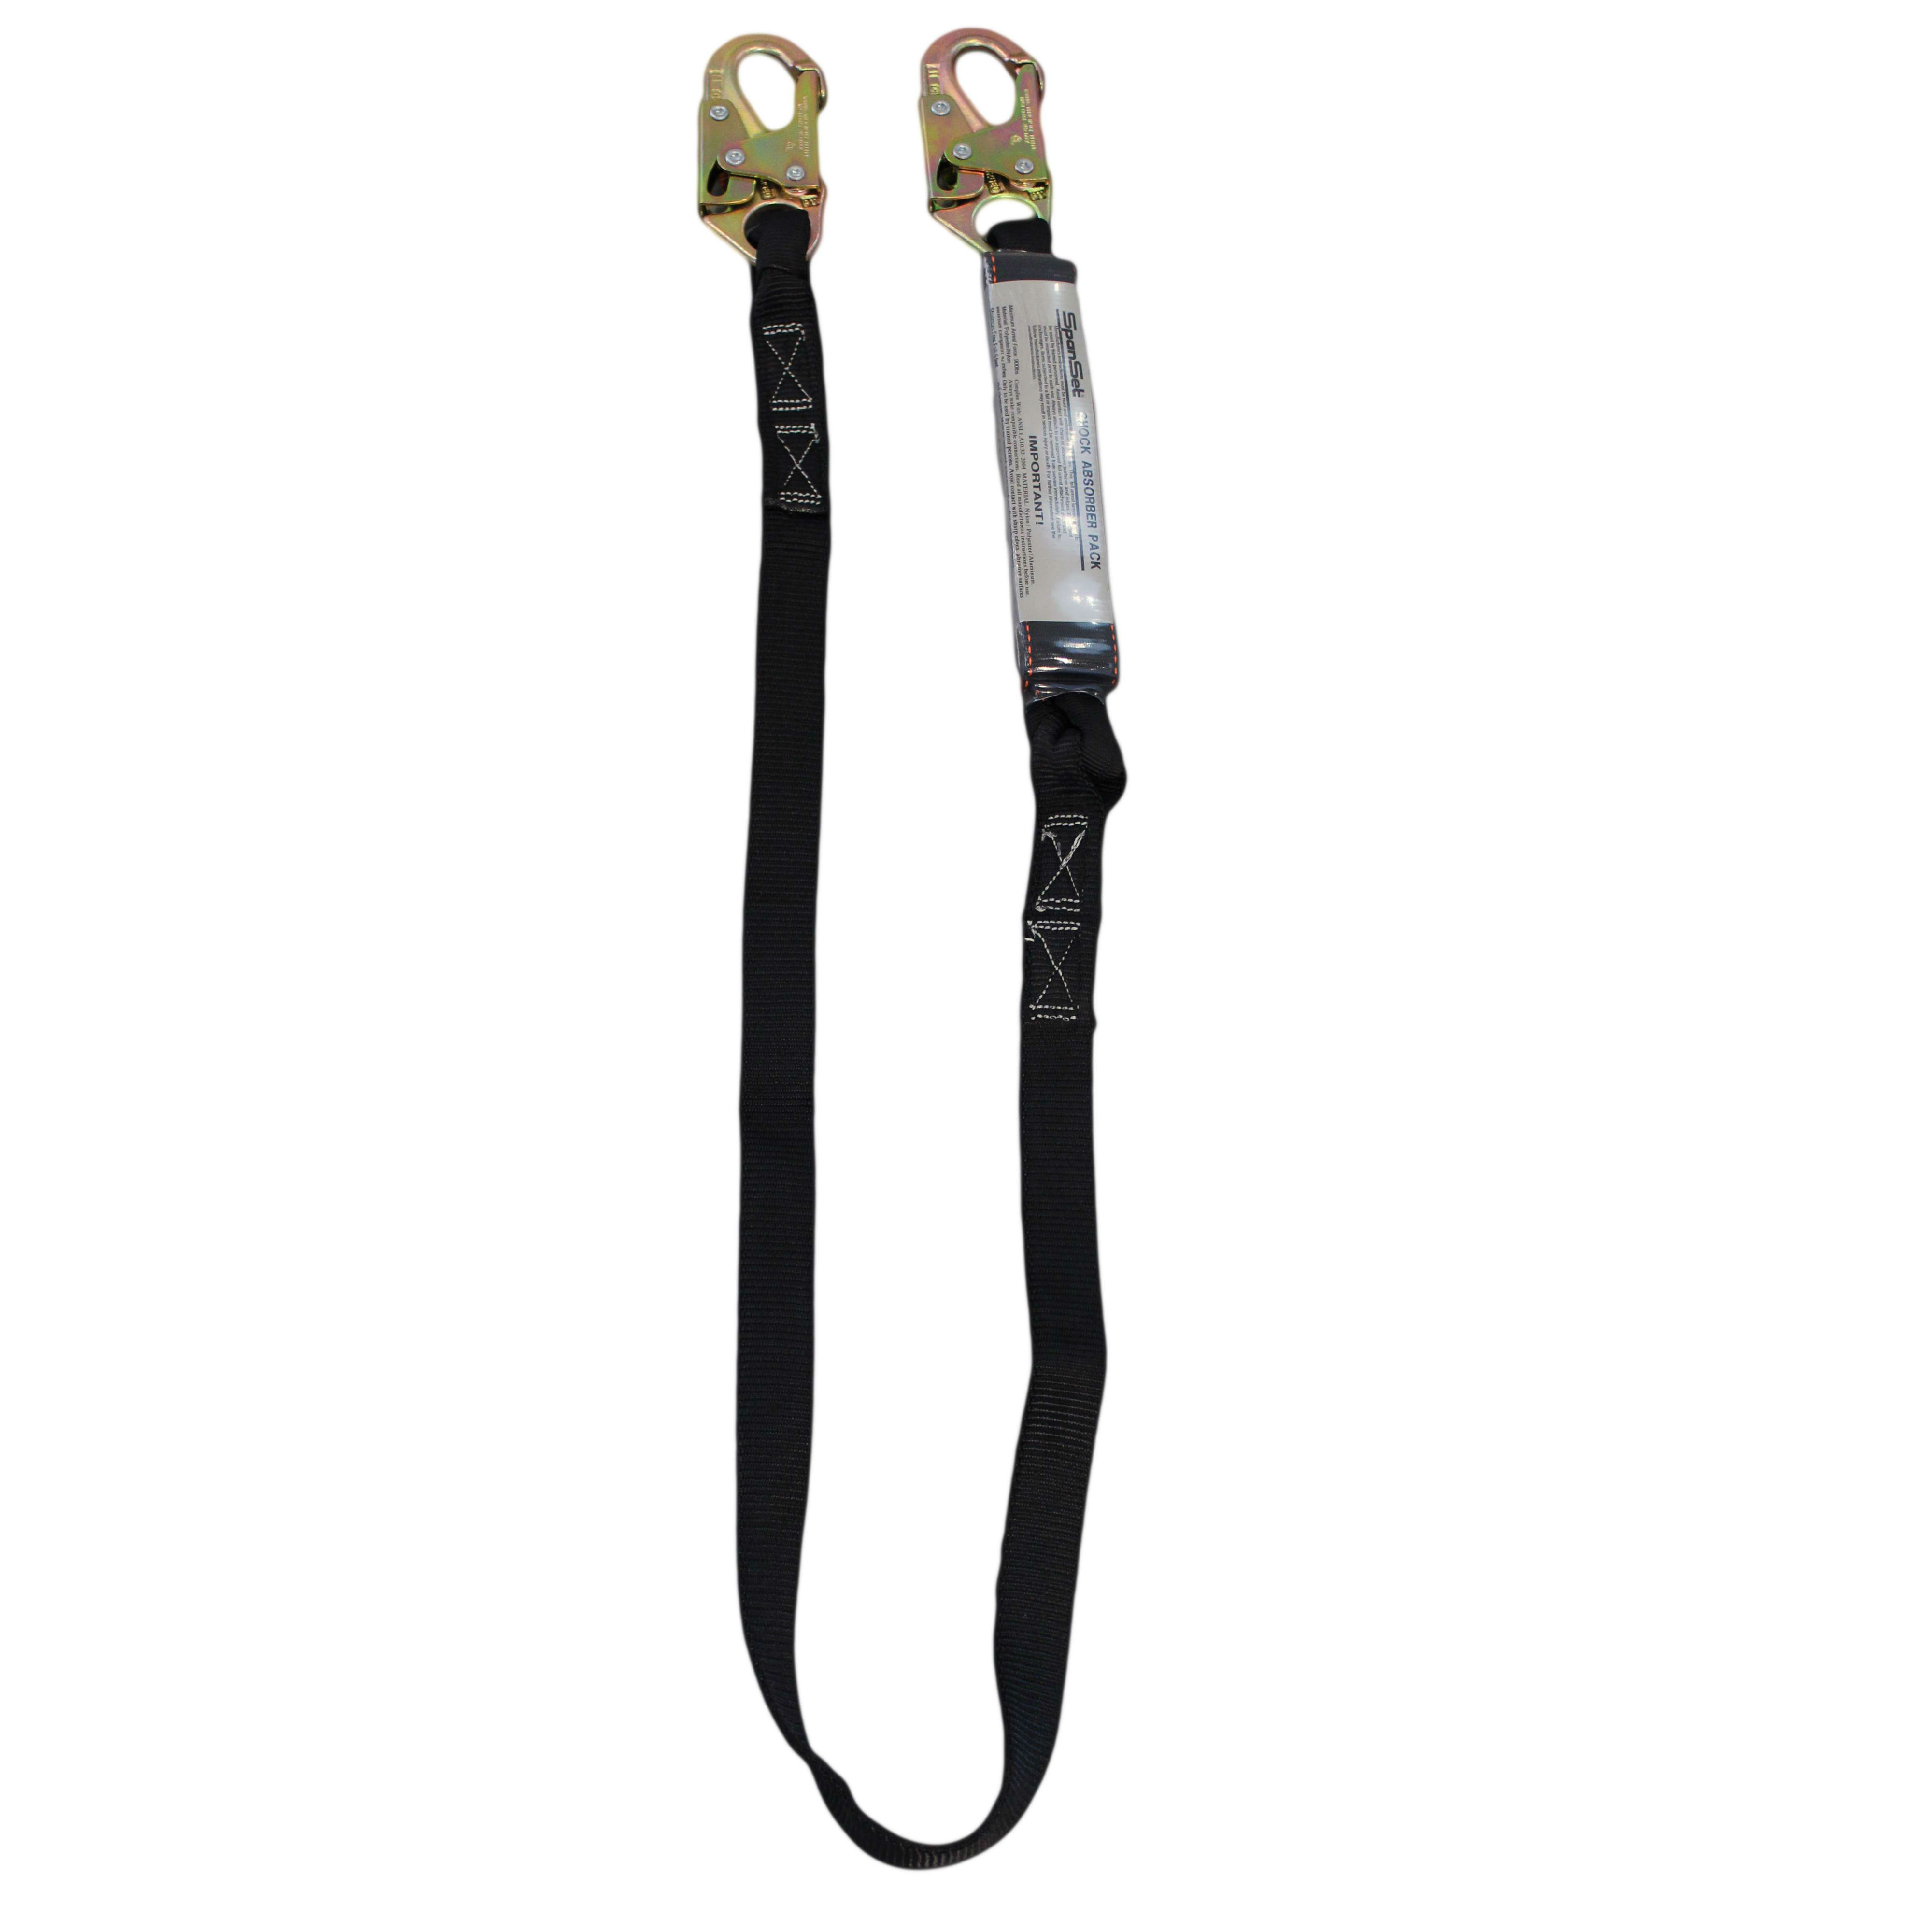 fall arrest lanyard 6 ft  u2013 mobile industrial safety supplies